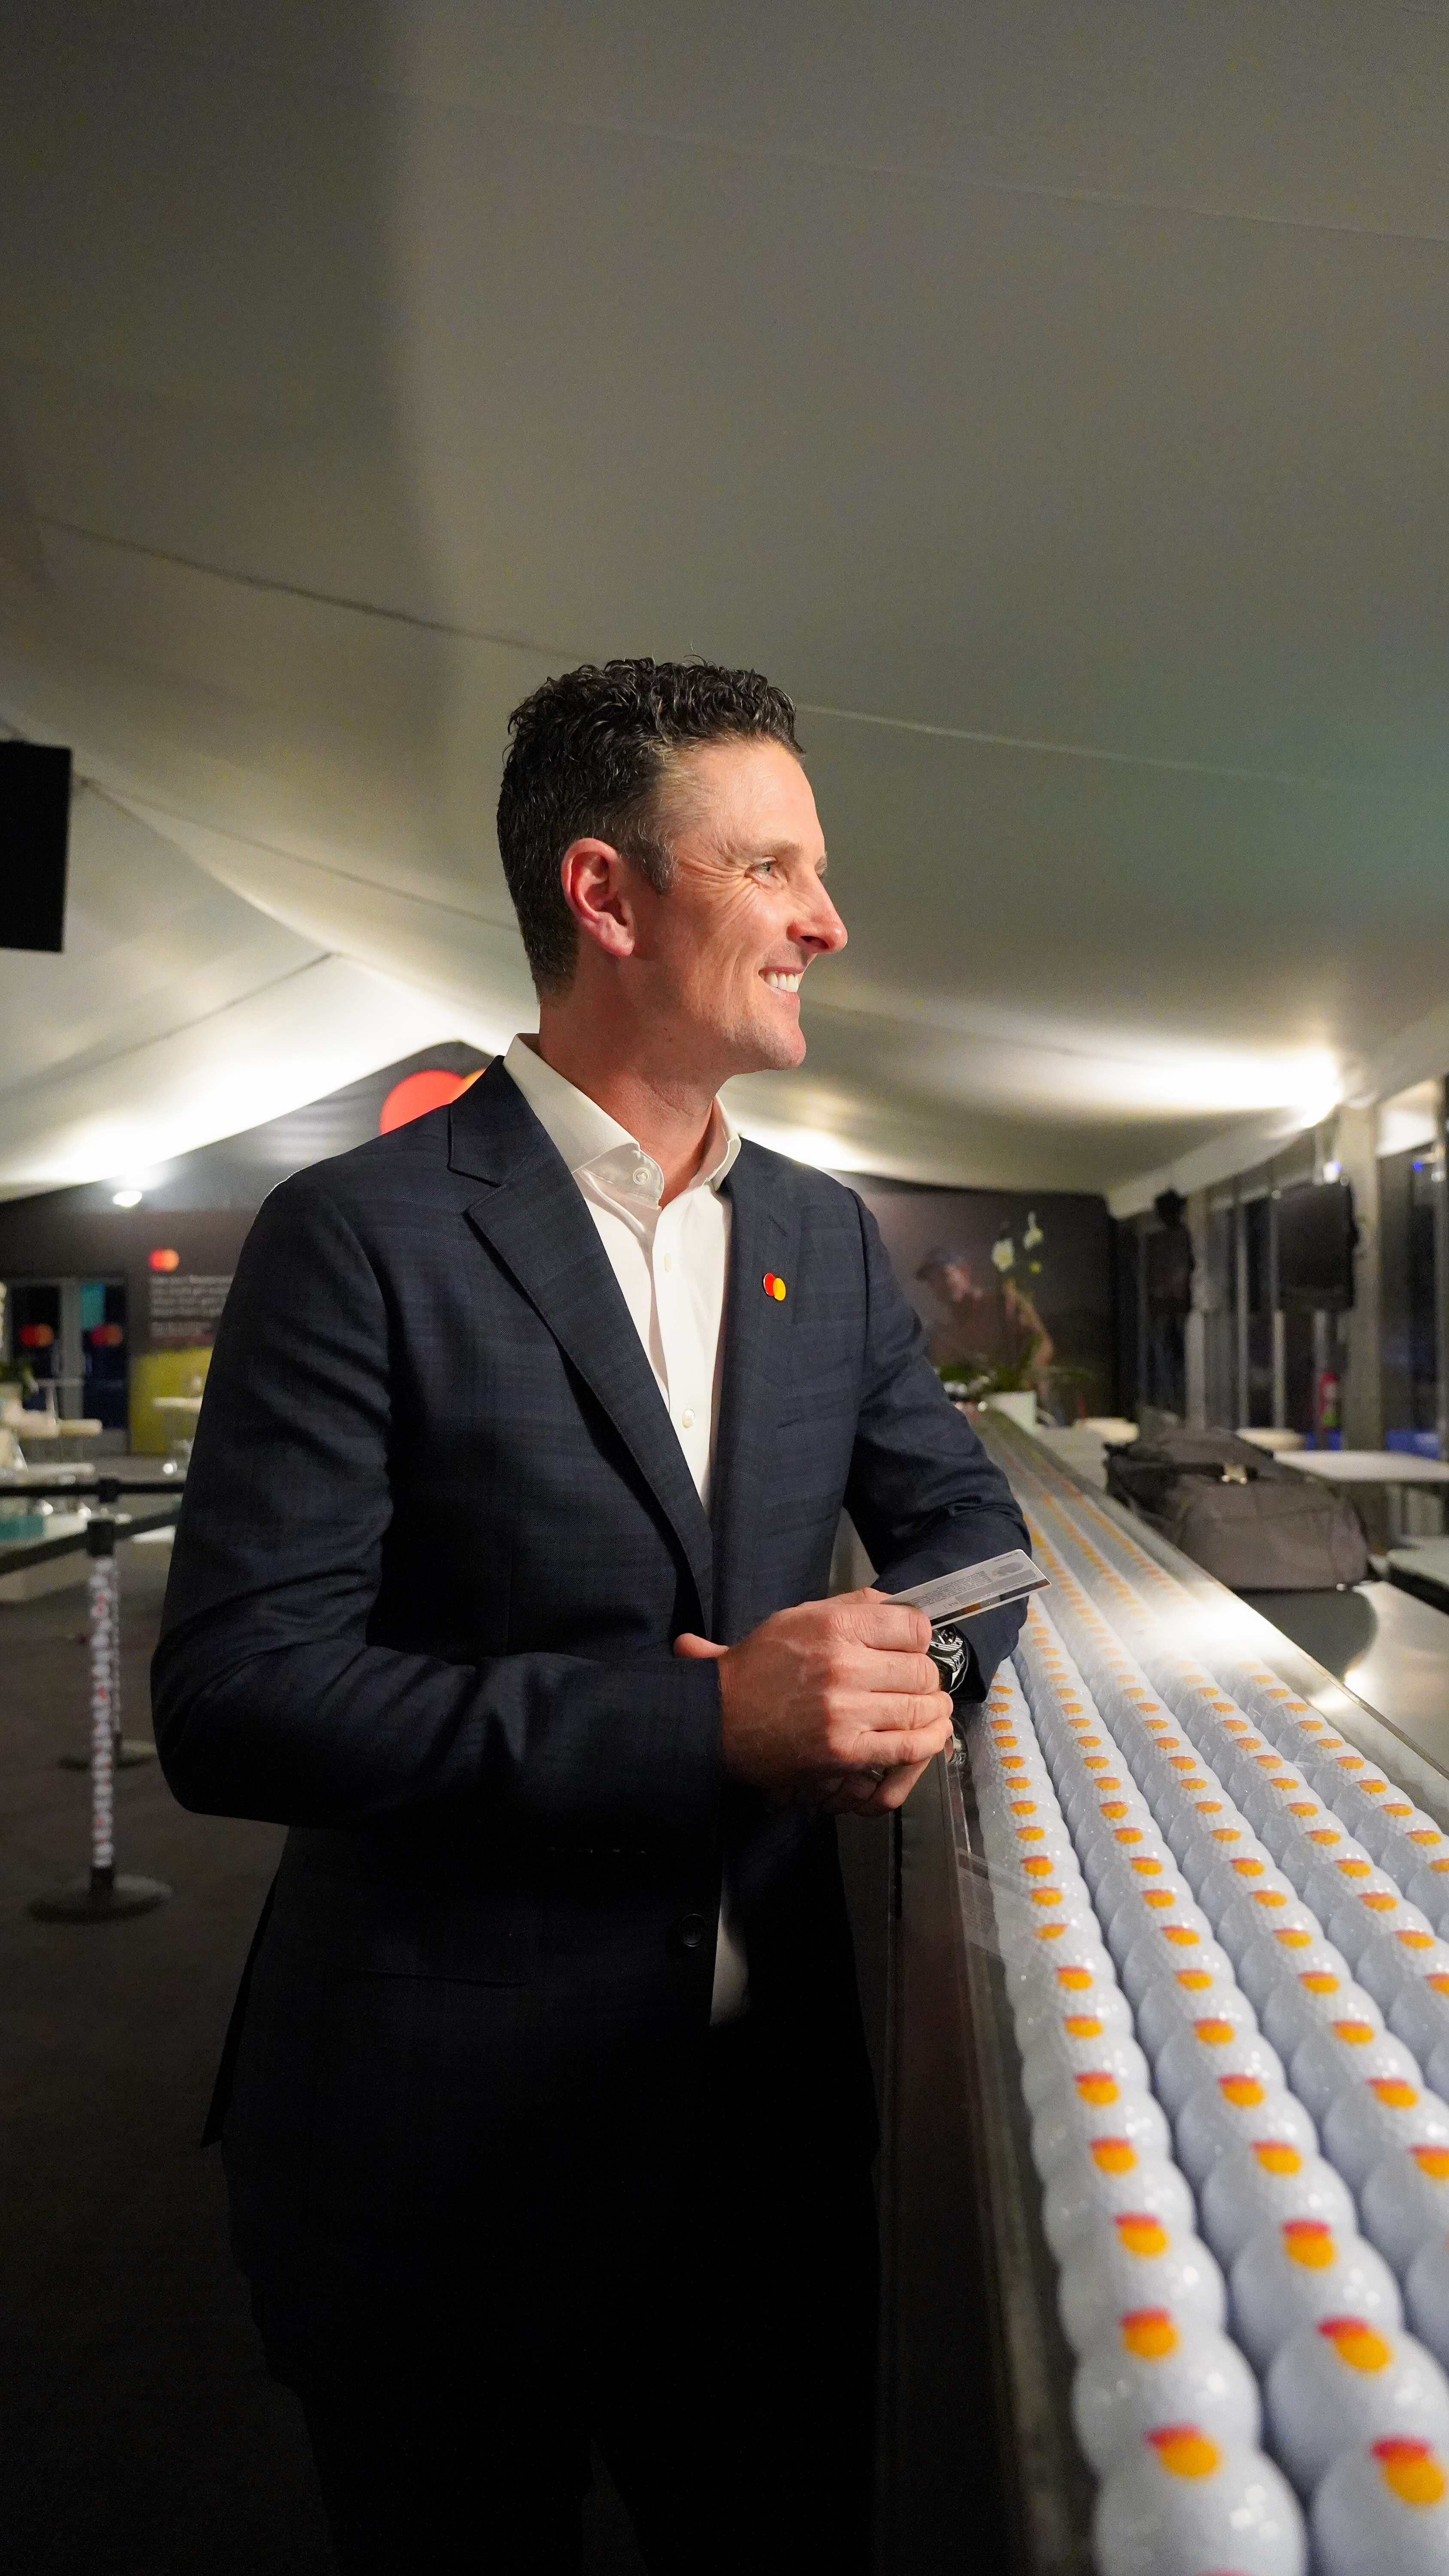 Mastercard's sonic brand sounds off as Justin Rose taps to pay at concessions at the Arnold Palmer Invitational presented by Mastercard